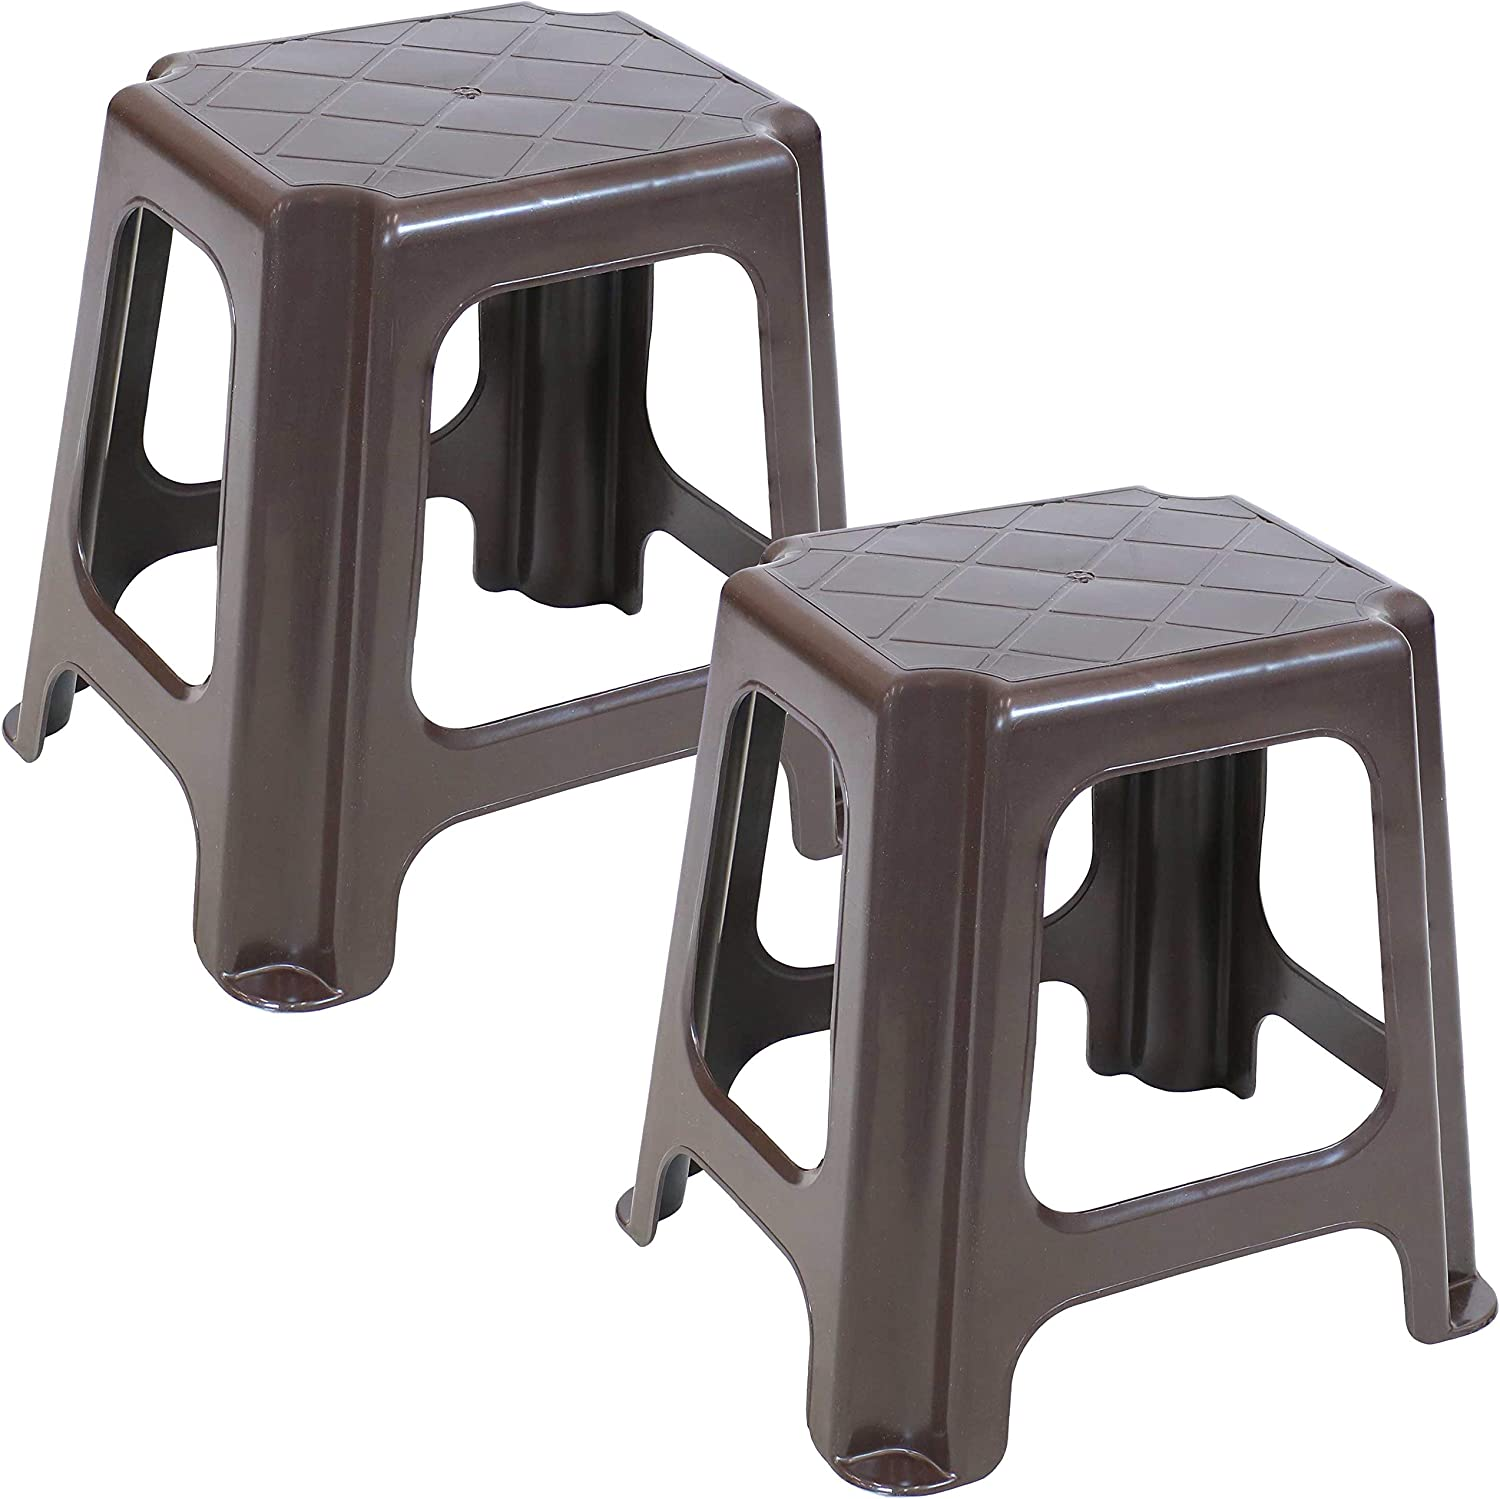 Sunnydaze Brown Plastic Step Stool - Indoor Outdoor Lightweight and Portable Footstool for Kitchen, Bathroom, Bedroom and Office - 260-Pound Weight Capacity - 16-Inch - Set of 2 Stools